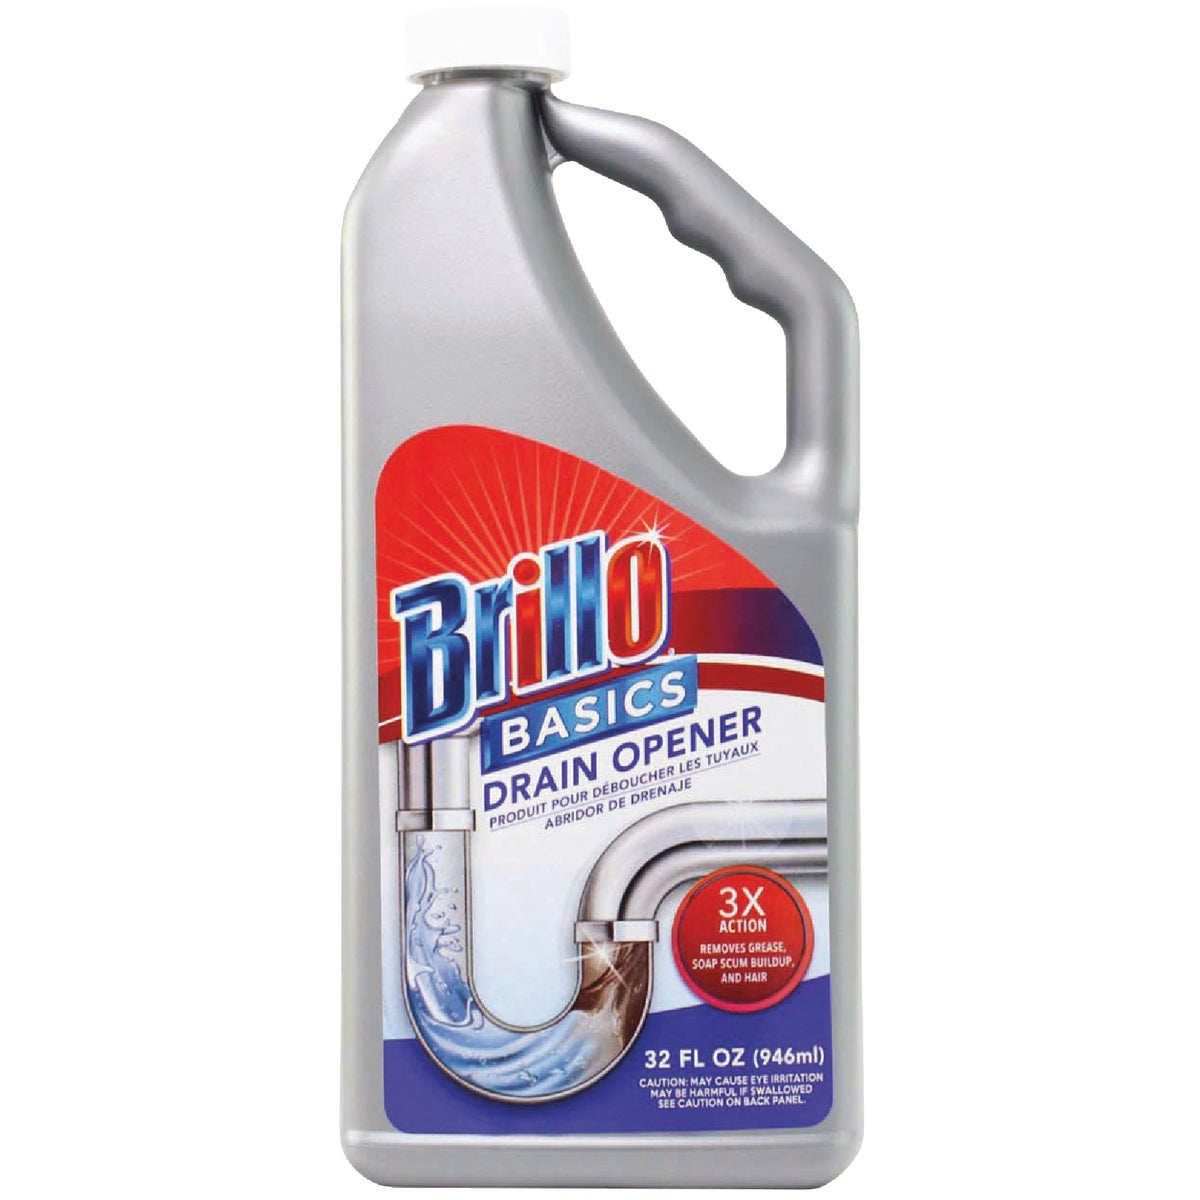 25OZ DRAIN CLEANER